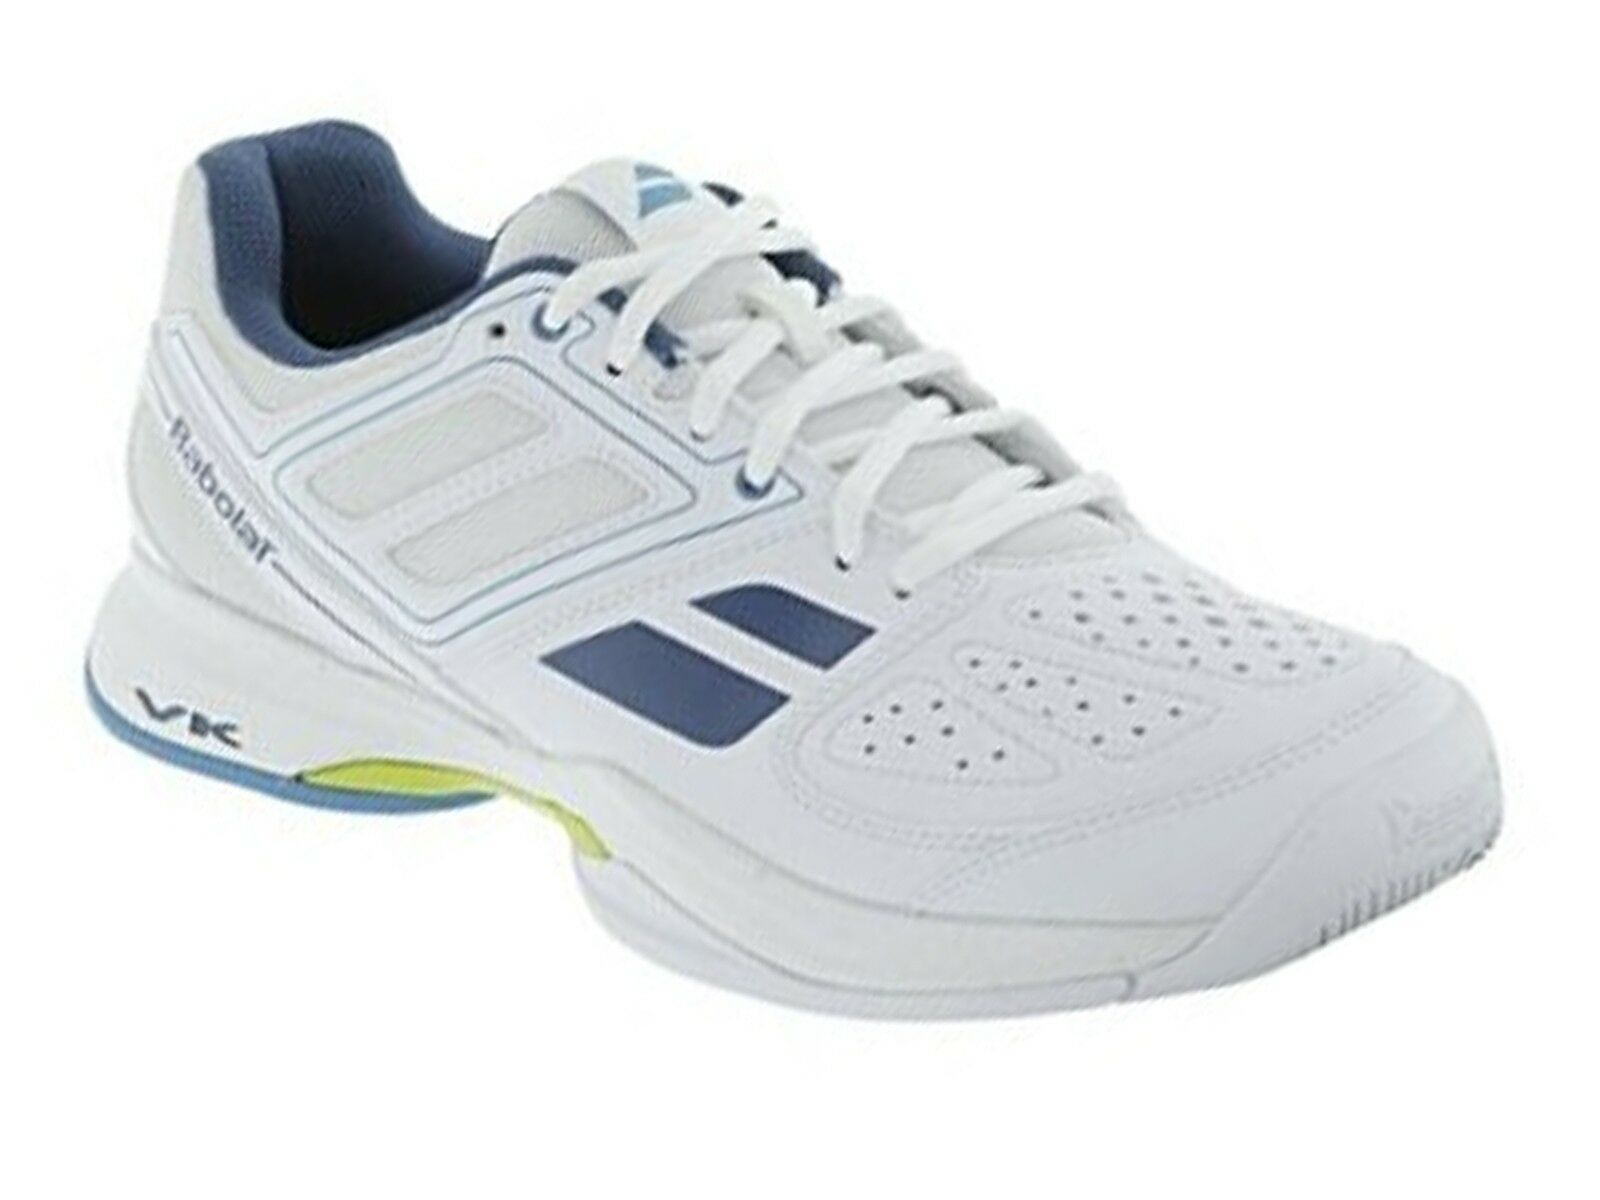 chaussures TENNIS hommes BABOLAT  30S1595 101  PULSION BPM ALL COURT M blanc